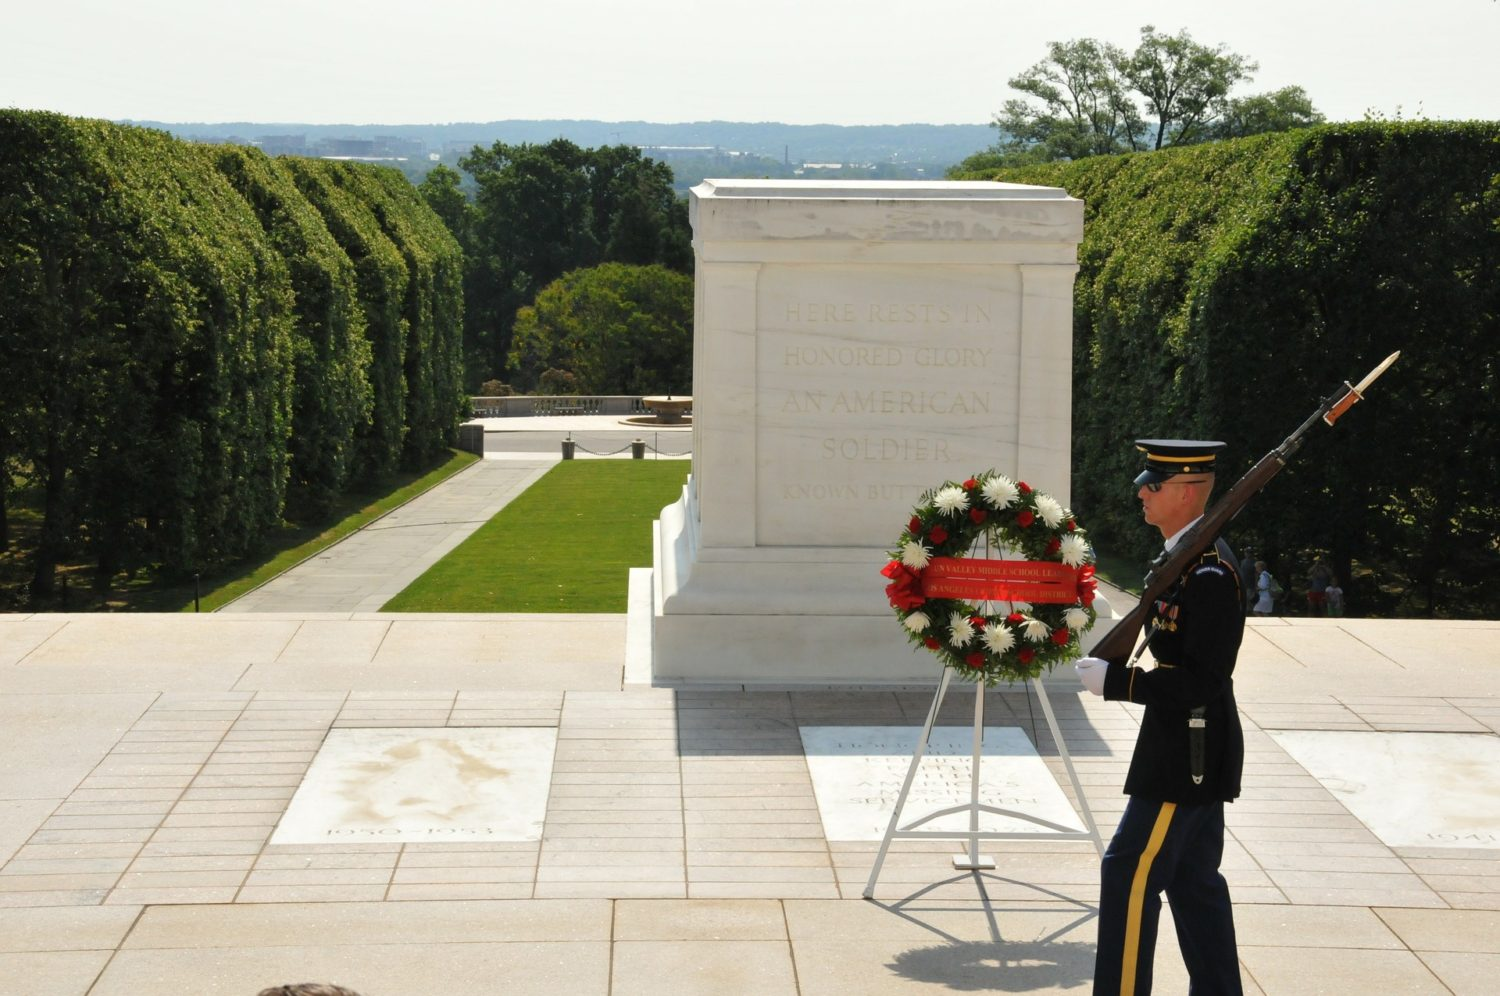 Tomb of the Unknowns, Washington, D.C.